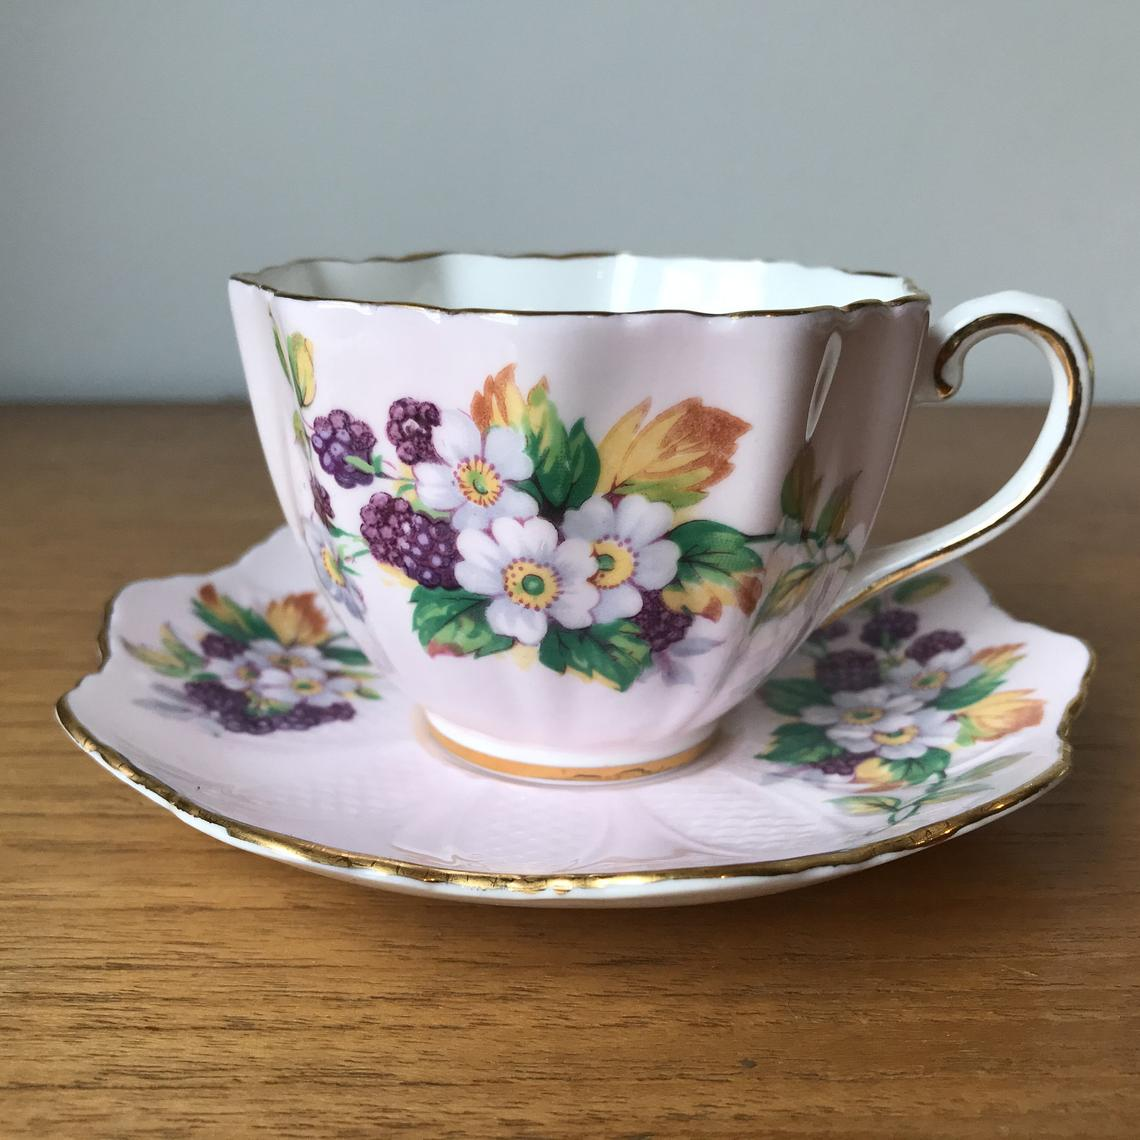 Vintage Paragon Pink Tea Cup and Saucer, Berries and Flowers Embossed Teacup and Saucer 1960s